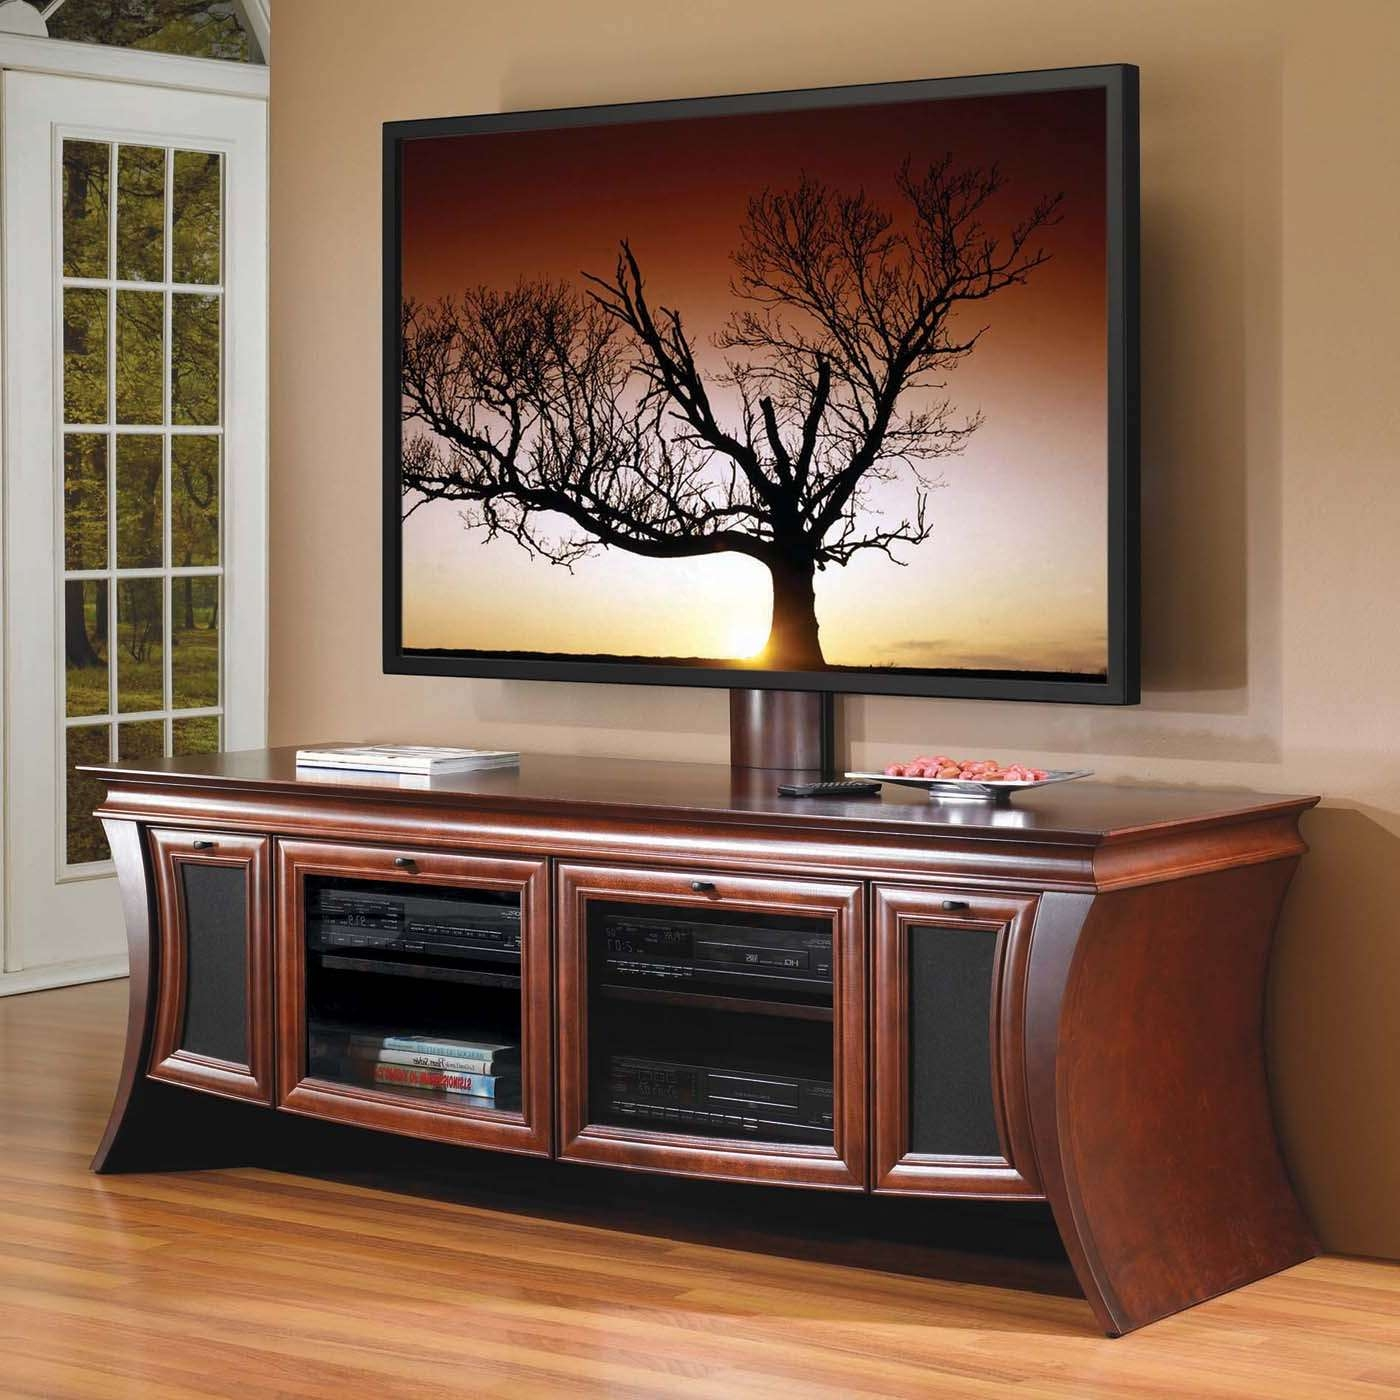 Brown Wooden Tv Stand With Mount And Console Media Cabinet Oak For Oak Tv Cabinets For Flat Screens (View 1 of 20)